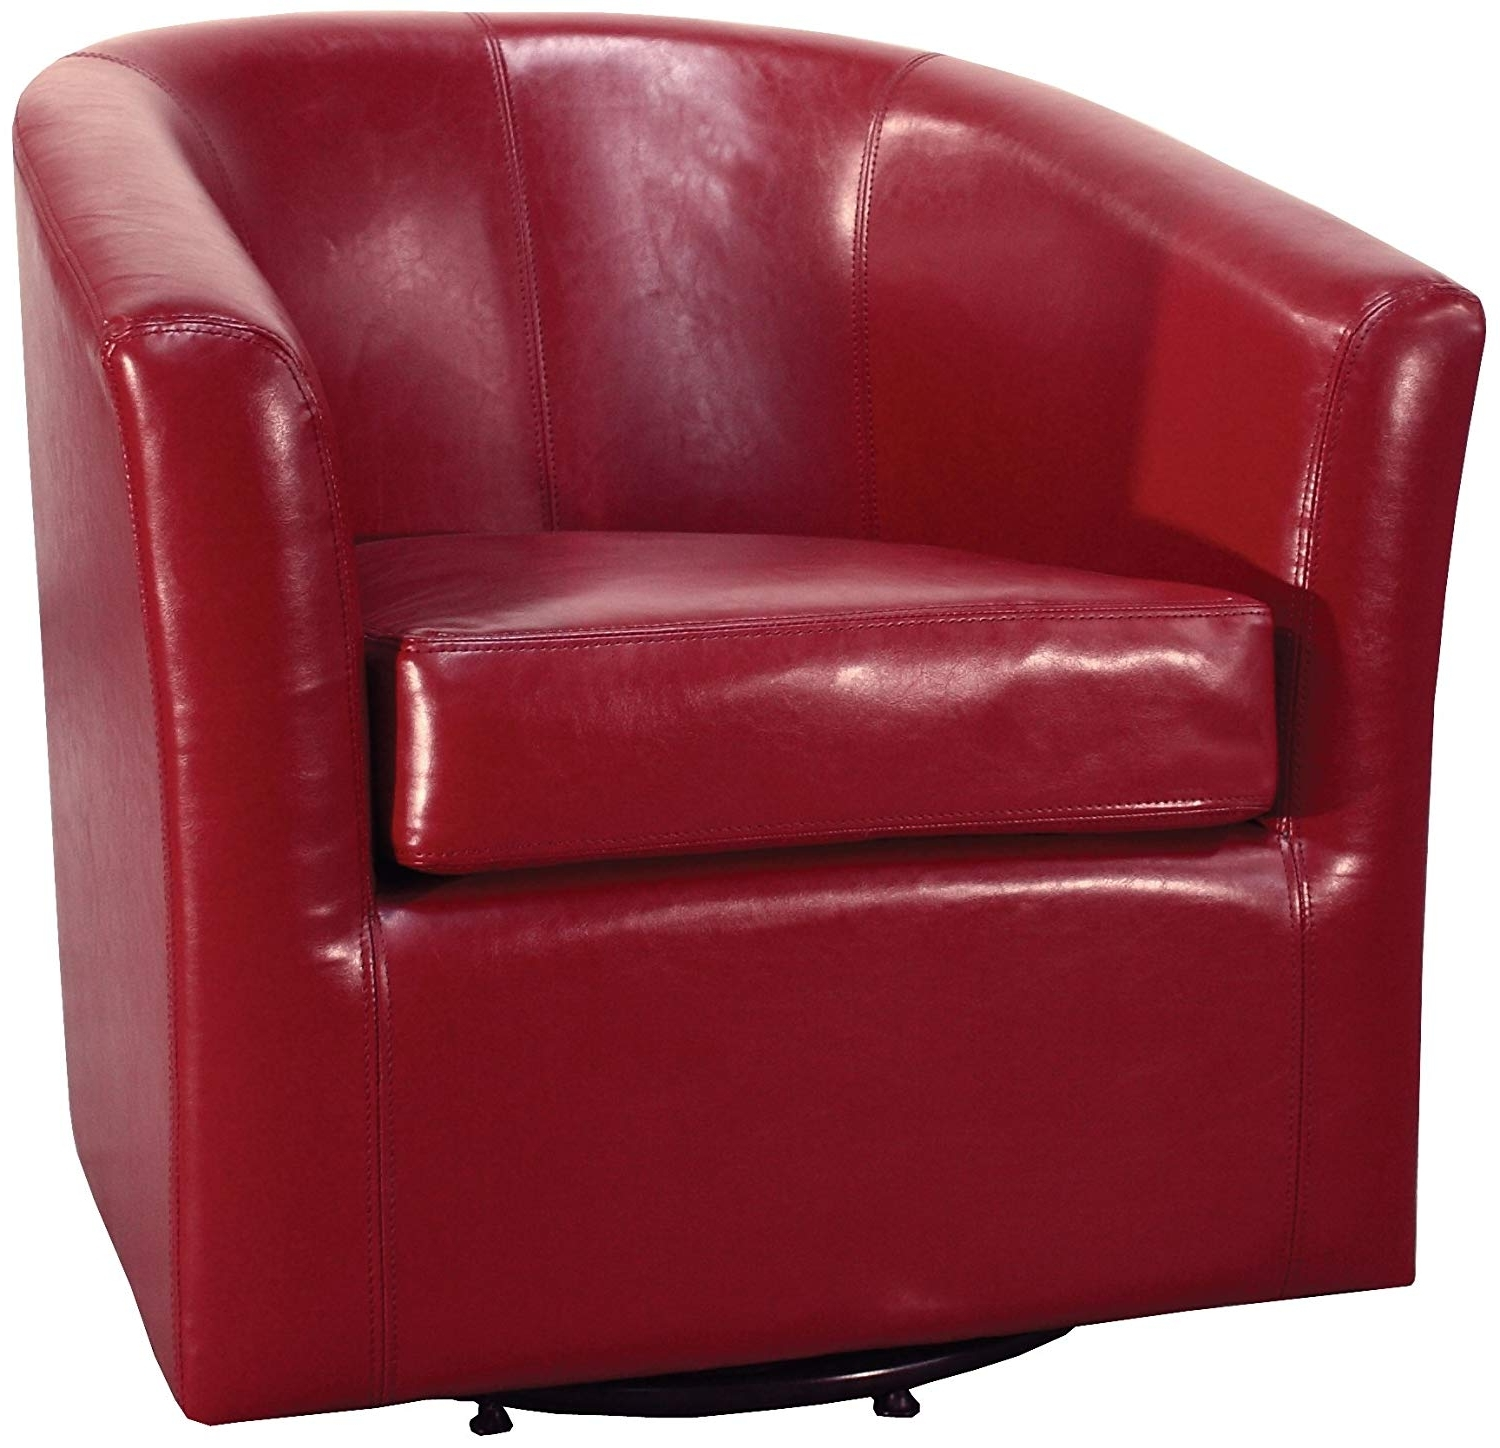 Most Popular Amazon: New Pacific Direct 193012b 67 Hayden Swivel Bonded Intended For Hayden Cognac Side Chairs (View 17 of 20)